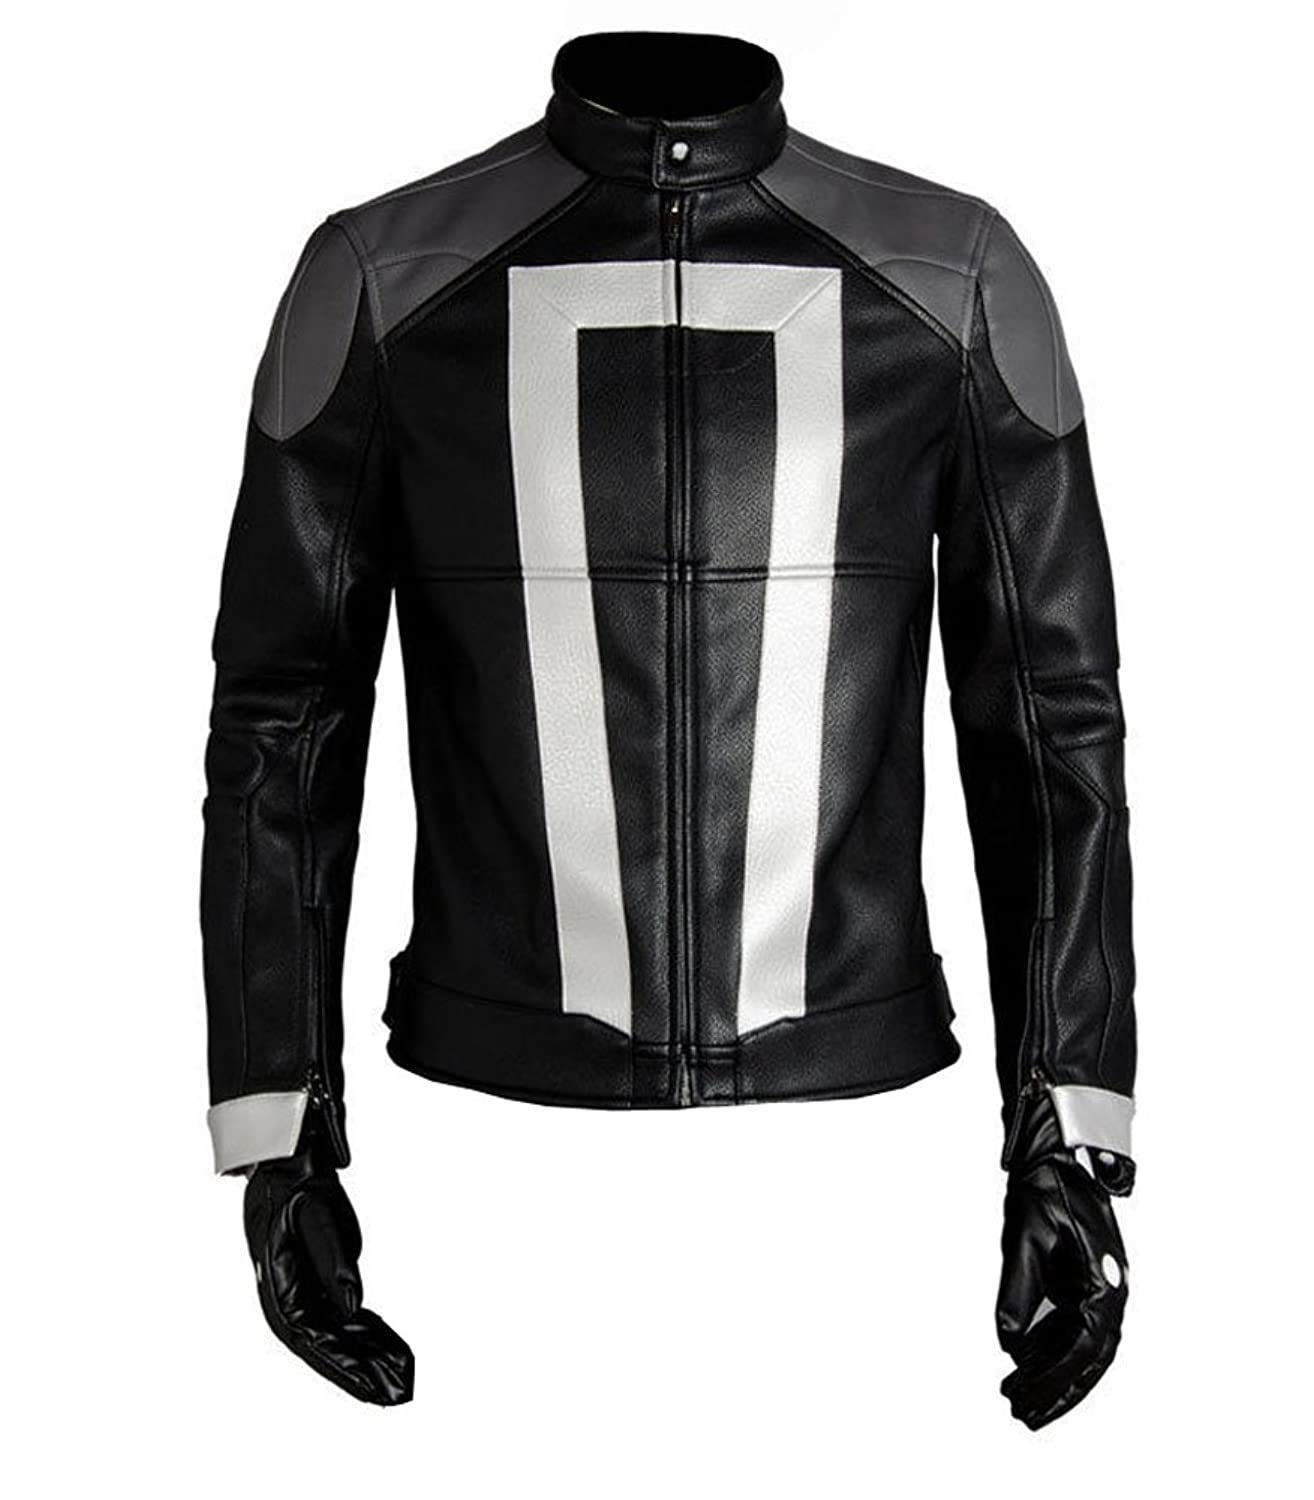 Men's Cool Agents of Shield Ghost Rider Jacket Cosplay Costume